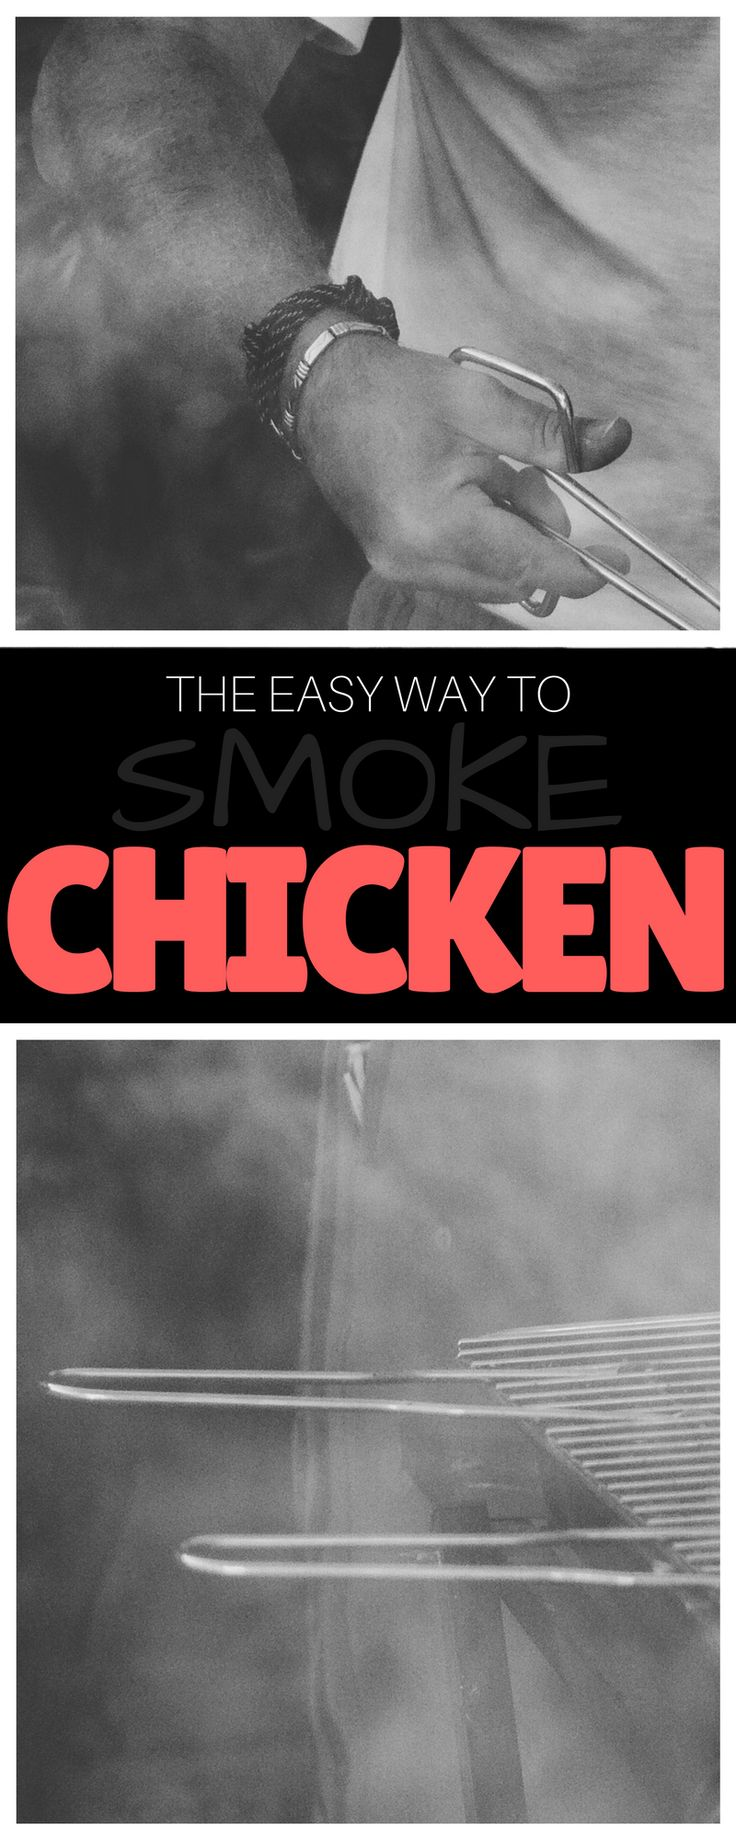 Smoking a whole chicken is not hard! Follow these simple steps! | Chicken Recipe | BBQ Recipes | Gas Barbecue Recipes | Gas Smoker Recipes | Gas Grill Recipes | Best Gas Grill Recipes | Best Gas Smoker Recipes | Best Gas BBQ Recipes | Best Gas Barbecue Re